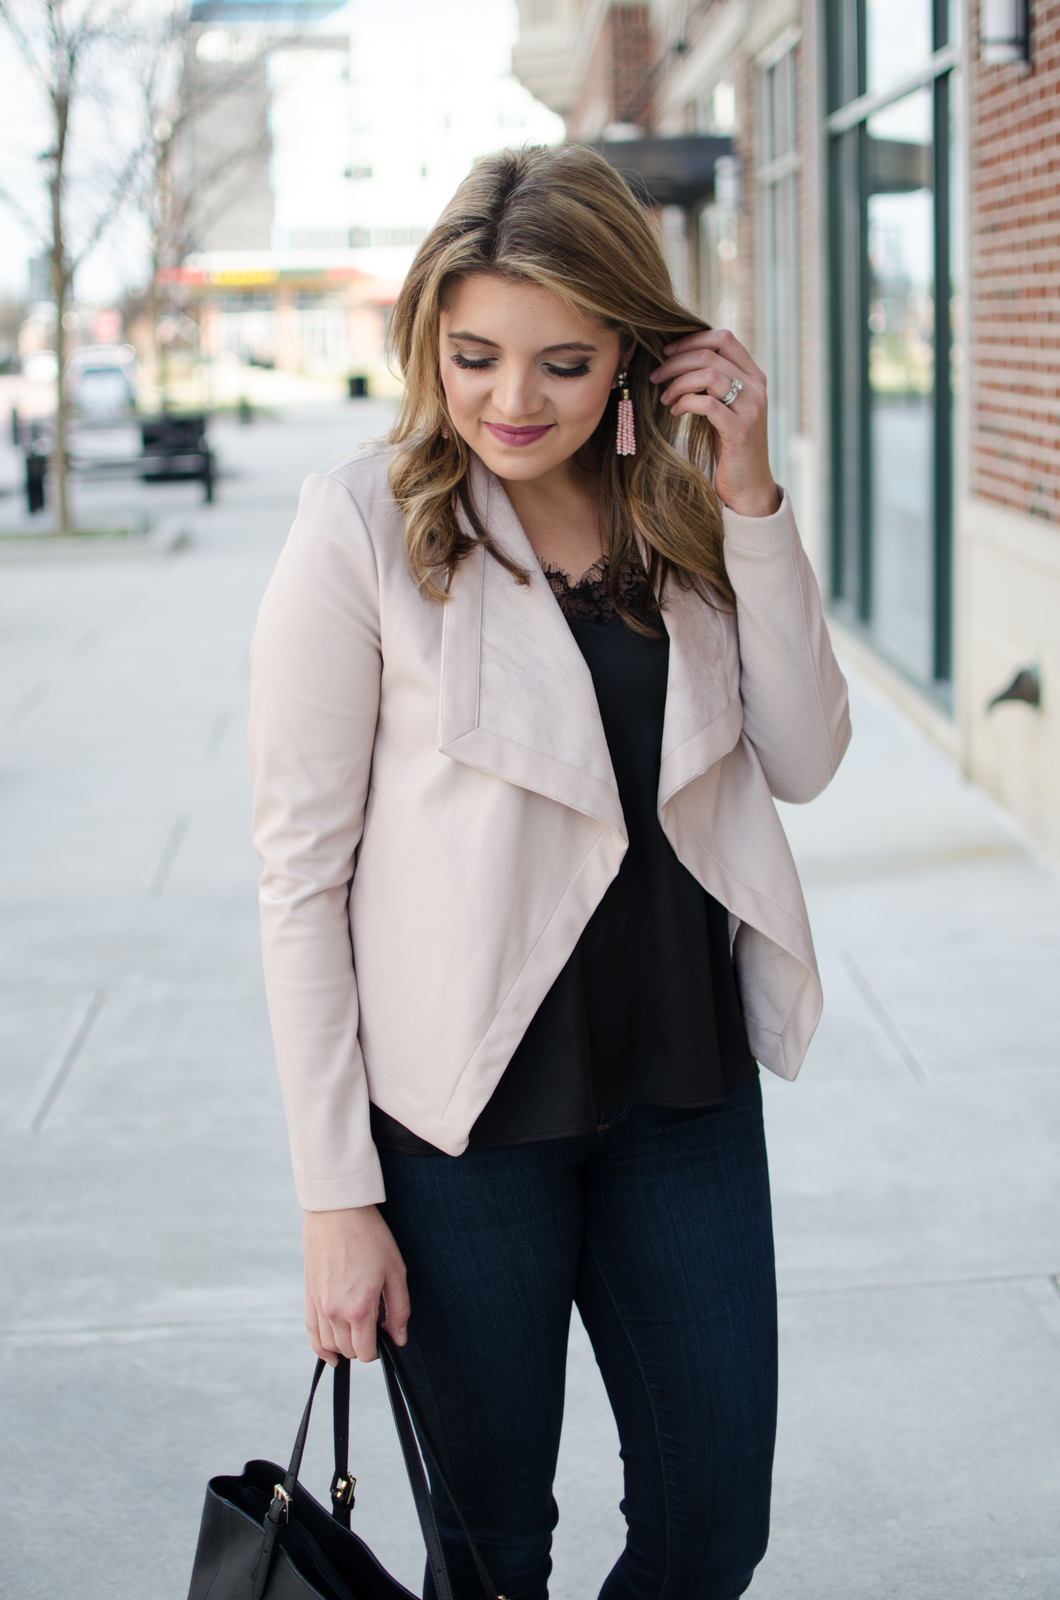 blush leather jacket, black lace camisole. | Click through for more casual outfits or to shop this look! www.bylaurenm.com